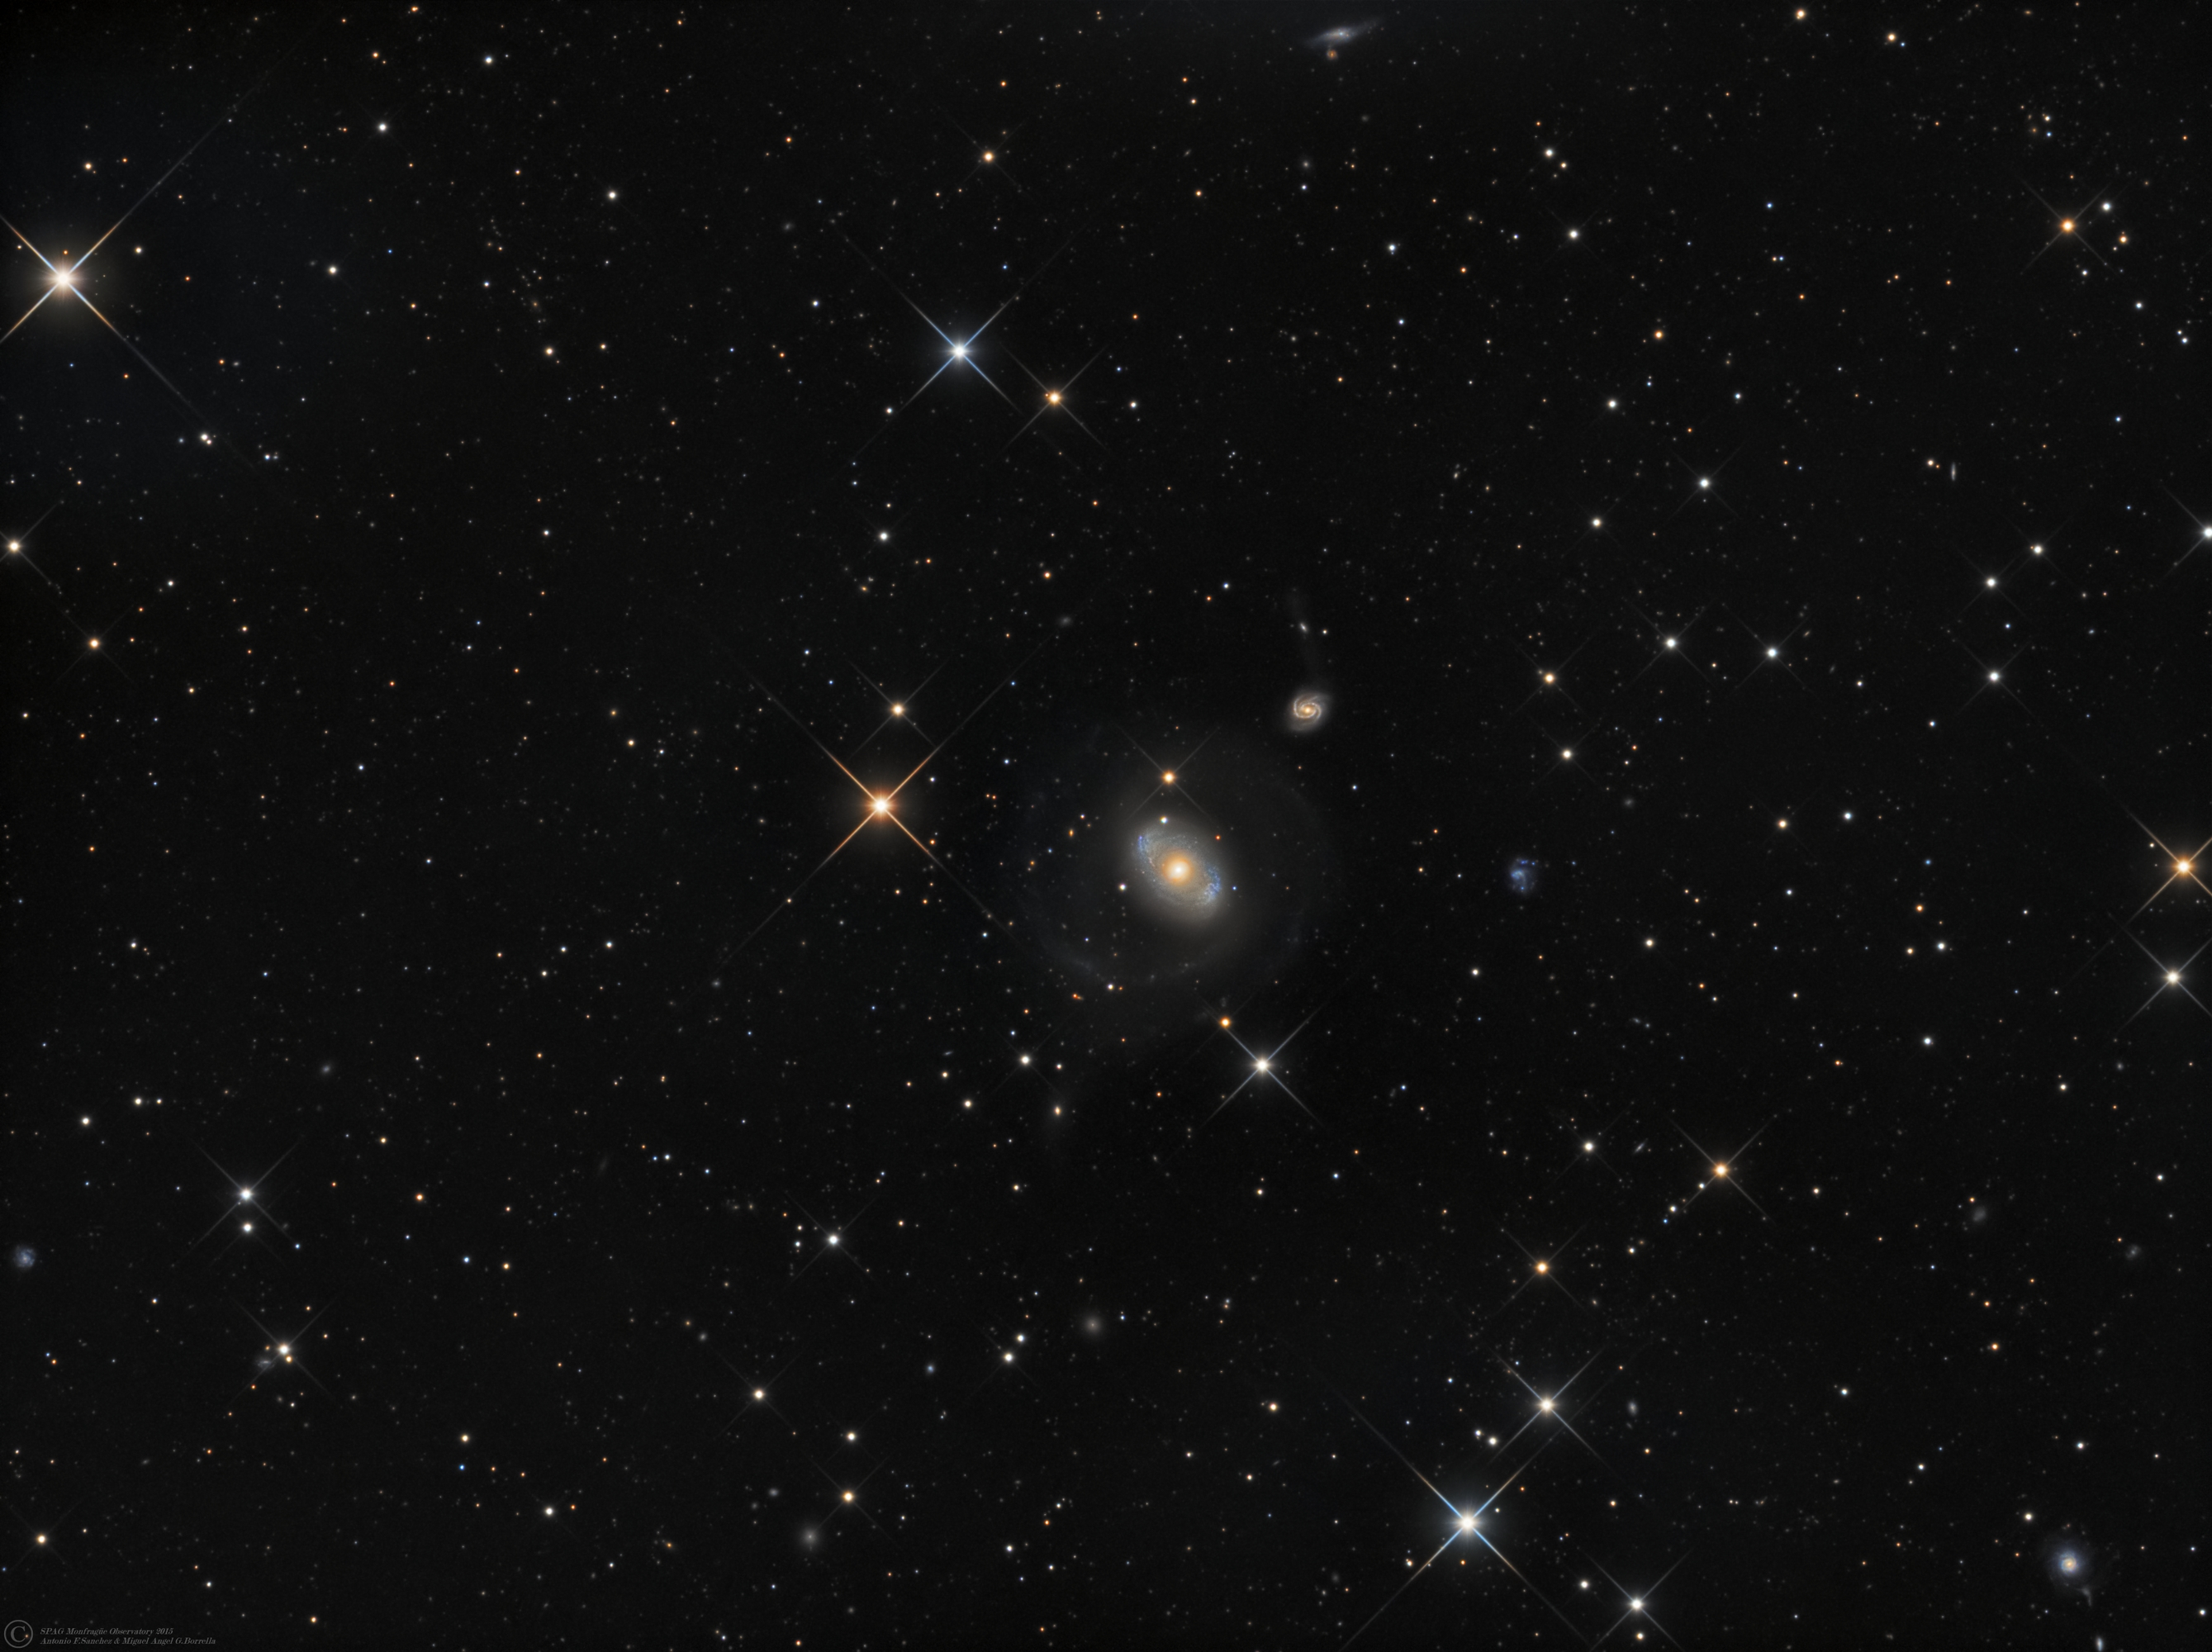 "NGC 4151 (Eye of Sauron),NGC 4156 (Canes Venatici).jpg - NGC 4151 (Eye of Sauron),NGC 4156 (Canes Venatici) * March-April 2015 * ASA N12 astrograph (f/3,6, 1078mm) * ASA DDM85 mount * FLI ML8300 at -25ºC * LRGB Optec filter set * L:582m  R: 180m G:170m B:190m * UNGUIDED * NGC 4151 is an intermediate spiral Seyfert galaxy located 43 million light-years from Earth, in the constellation Canes Venatici. The galaxy was first mentioned by William Herschel on March 17, 1787; it was one of the two Seyfert galaxies described in the paper which defined the term. It is one of the nearest galaxies to Earth to contain an actively growing supermassive black hole; it was speculated that the nucleus may host a binary black hole, with about 40 million and about 10 million solar masses respectively, orbiting with a 15.8-year period. This is, however, still a matter of active debate.Some astronomers nickname it the ""Eye of Sauron"" from its appearance.X-ray sourceAstronomers using data from the European Space Agency's XMM-Newton satellite have found a long-sought X-ray signal from NGC 4151. When the black hole's X-ray source flares, its accretion disk reflects the emission about half an hour later.A litte tidal tail can be seen at the bottom of the galaxy...and also in the spiral galaxy NGC 4156..(Credits: NASA&Wikipedia)"